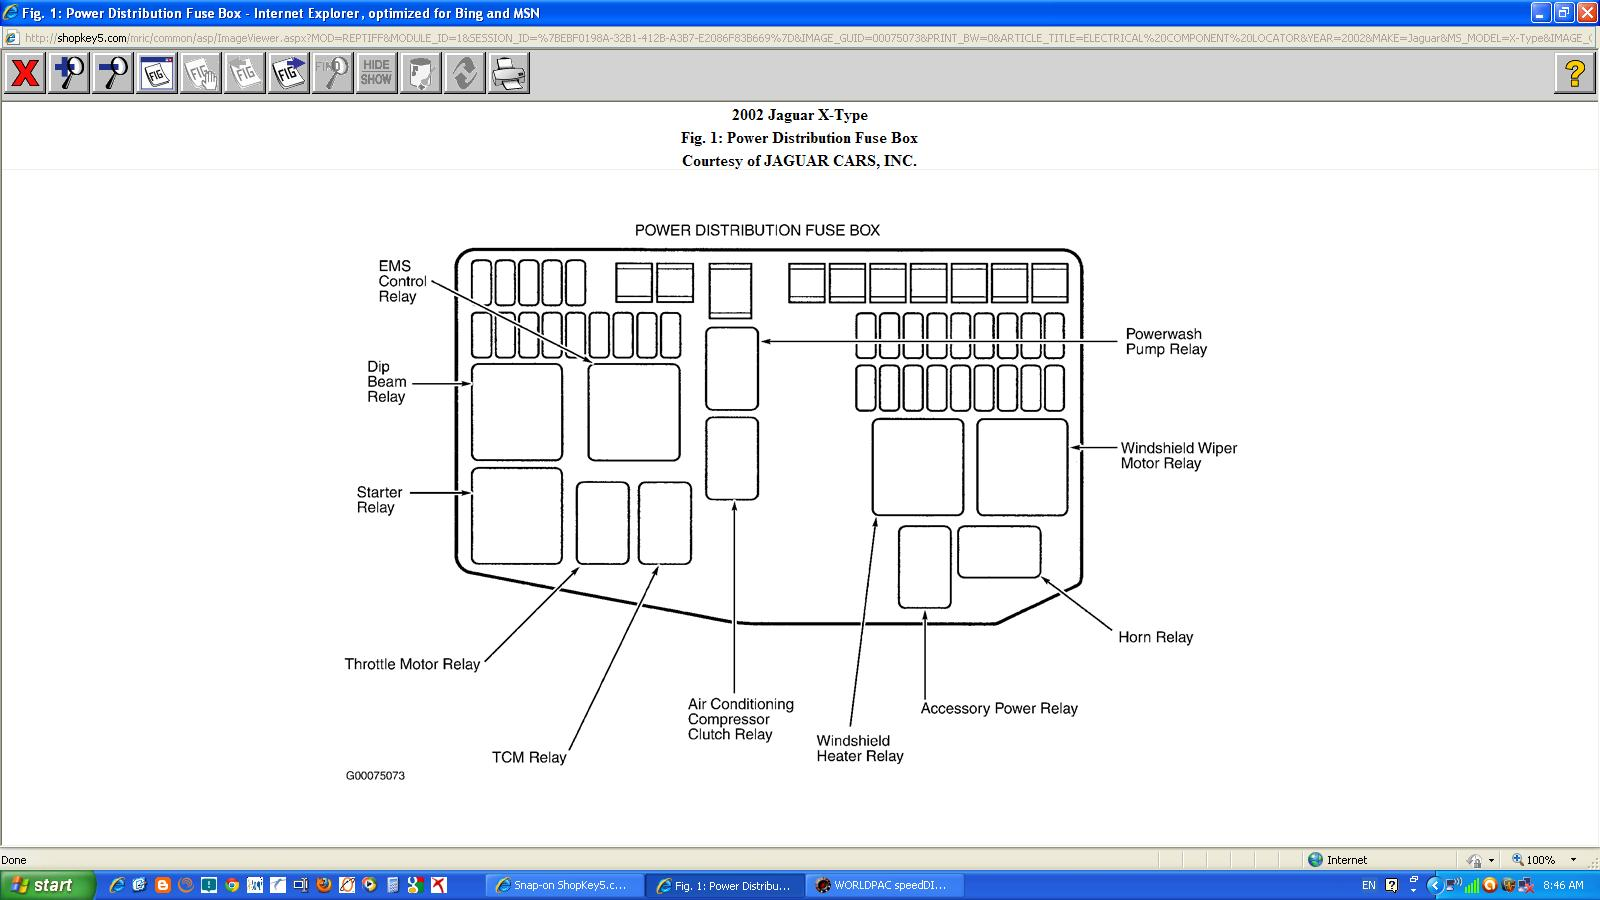 wiring diagram jaguar xf  wiring  get free image about 2003 jaguar x type 2.5 fuse box diagram 2003 jaguar x type fuse box diagram